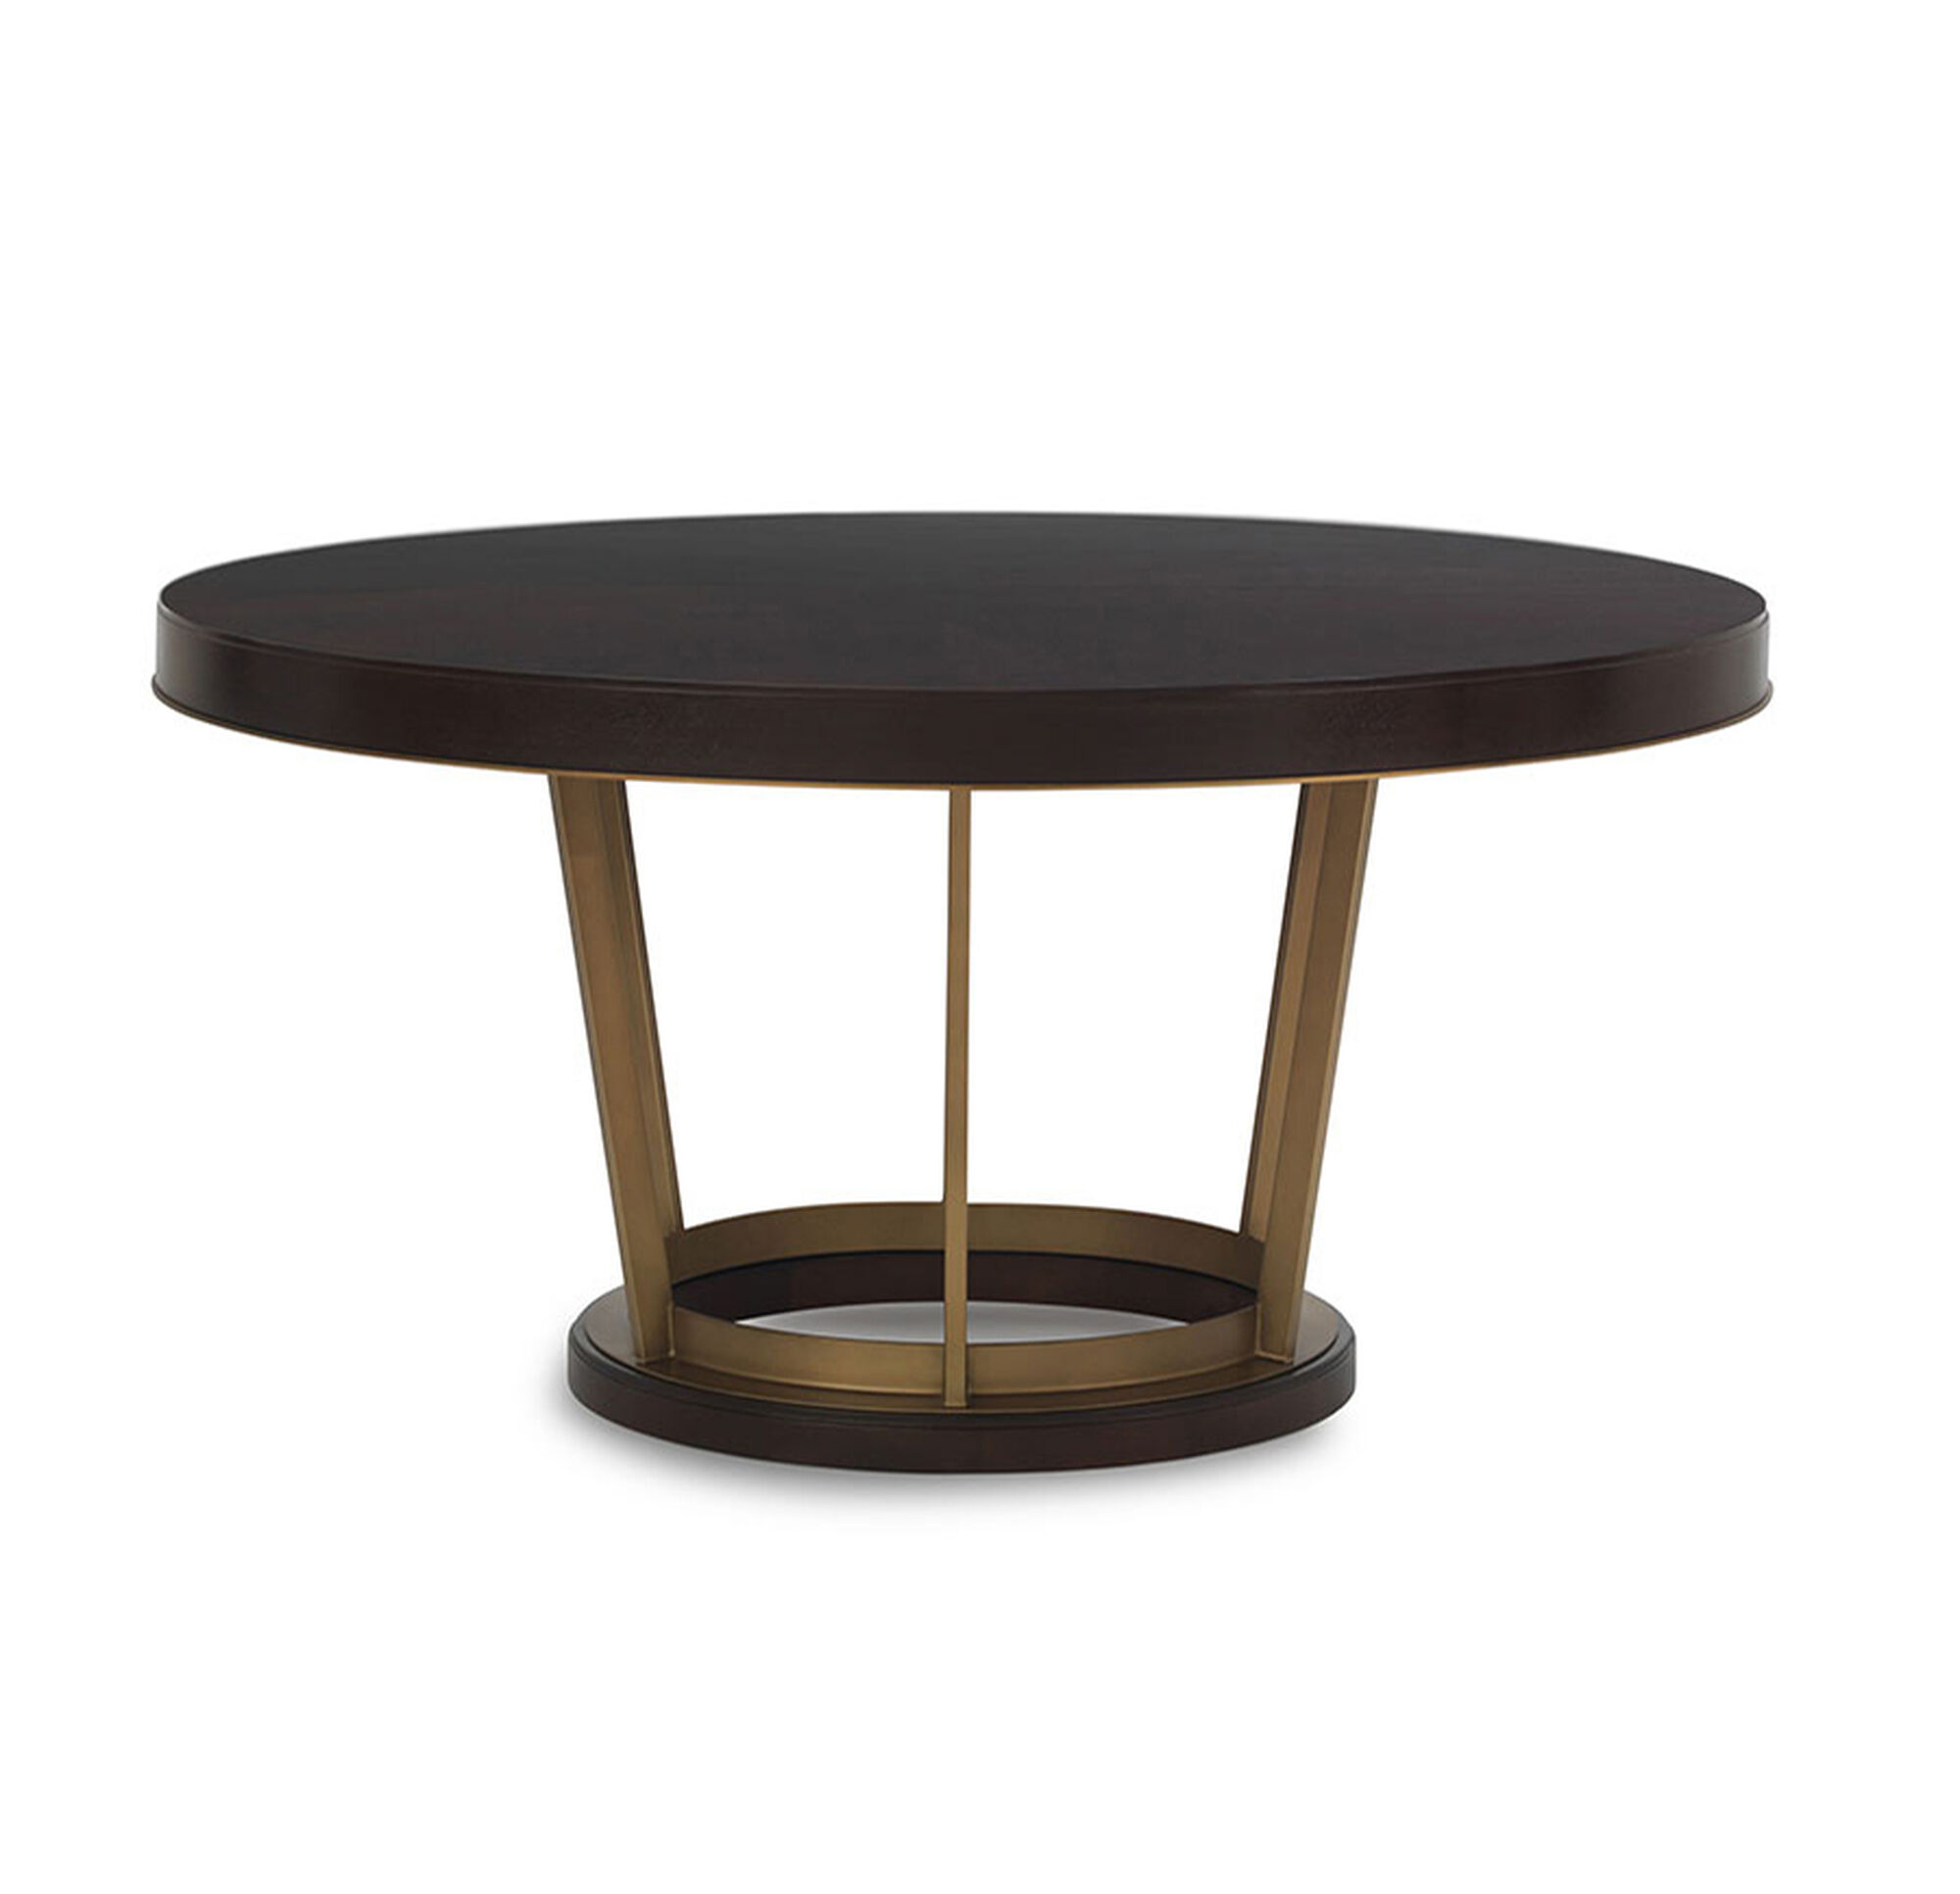 DELANEY DINING TABLE